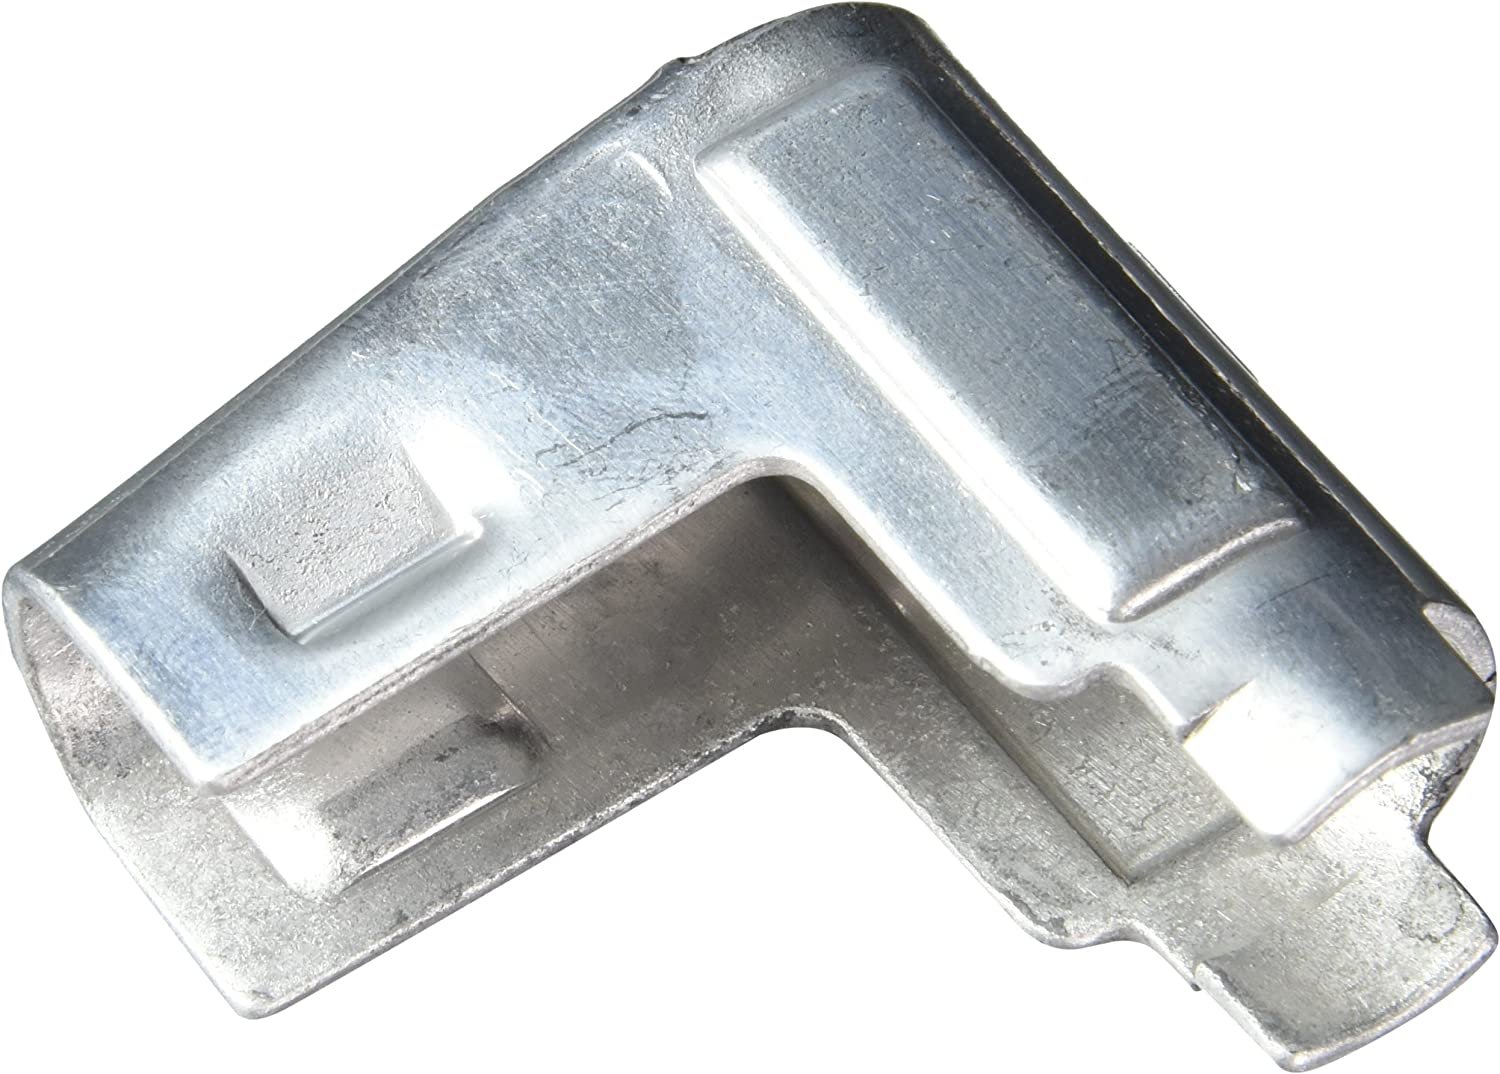 Taylor Cable 2570 Polished Aluminum Spark Plug Boot Heat Shield Protectors Pack of 2